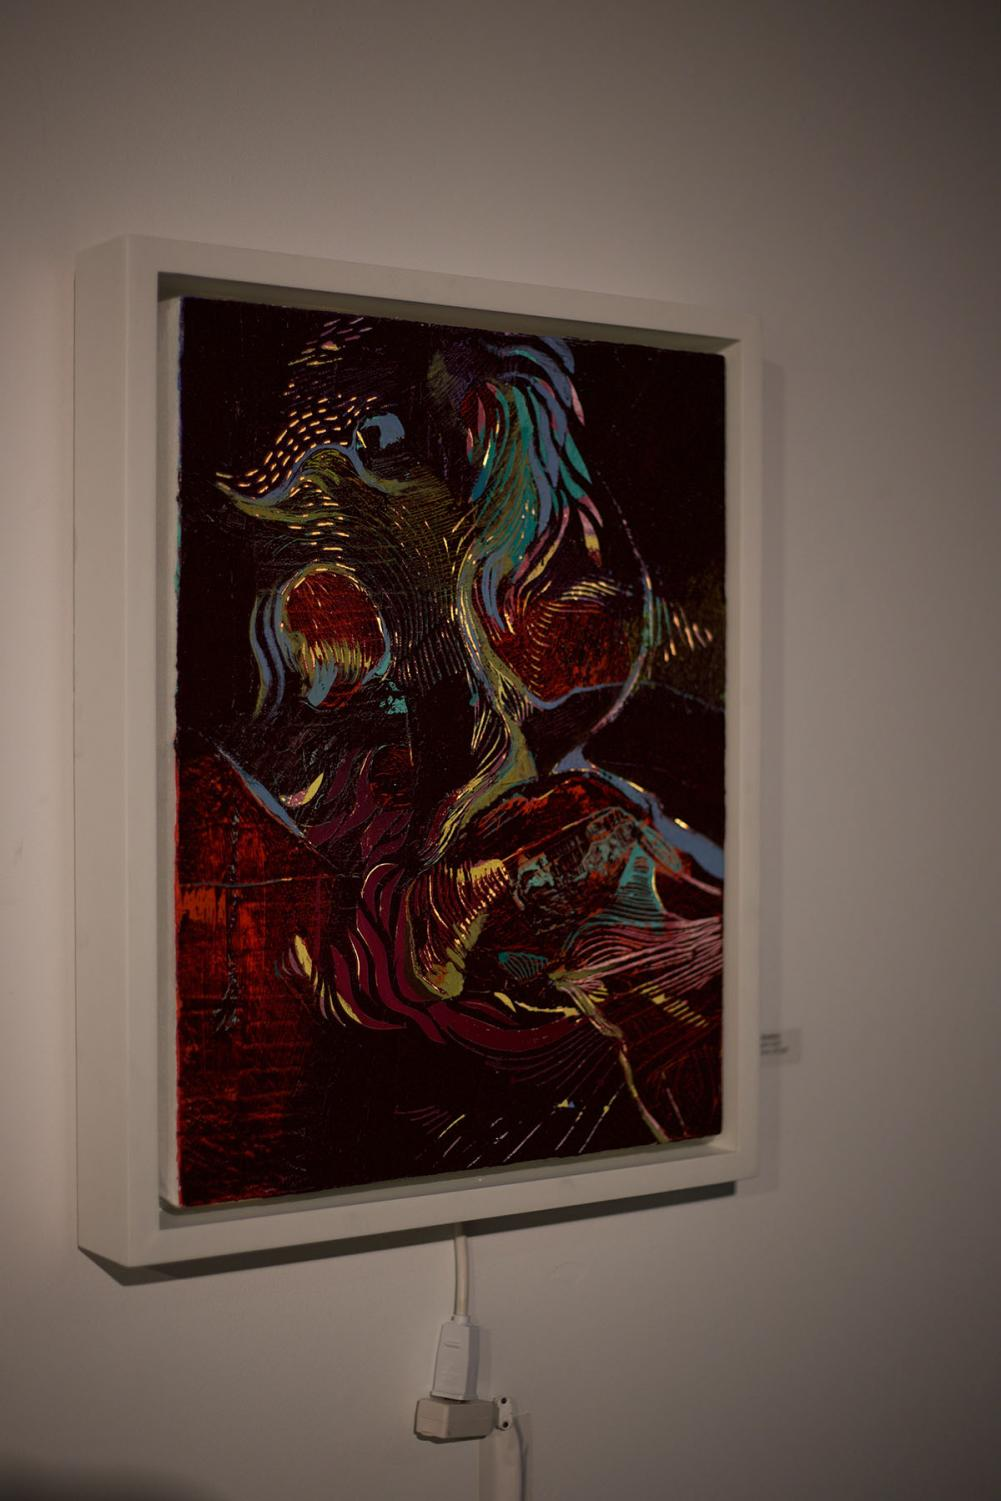 Stensberg+utilized+abstract+work+in+her+paintings%2C+such+as+this+piece%2C+titled%2C+%E2%80%9CSanguine+Squid.%E2%80%9D